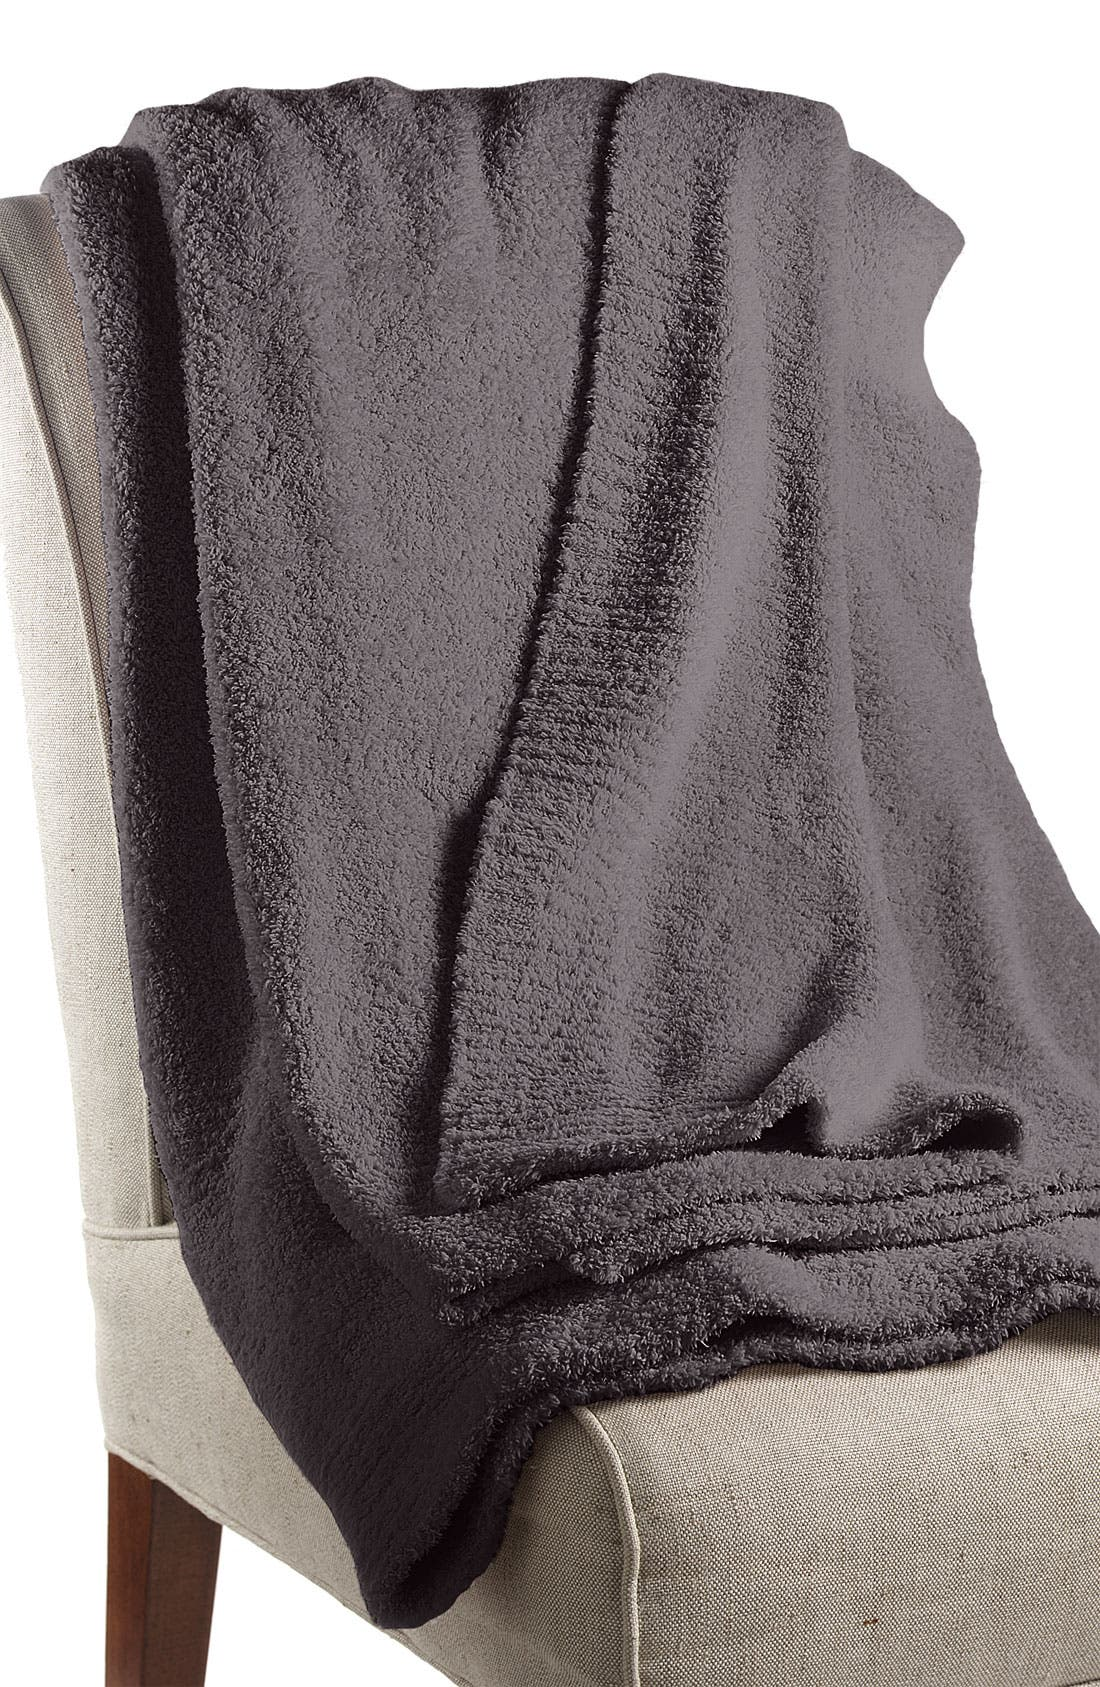 'CozyChic<sup>®</sup>' Ribbed Blanket,                             Main thumbnail 1, color,                             020